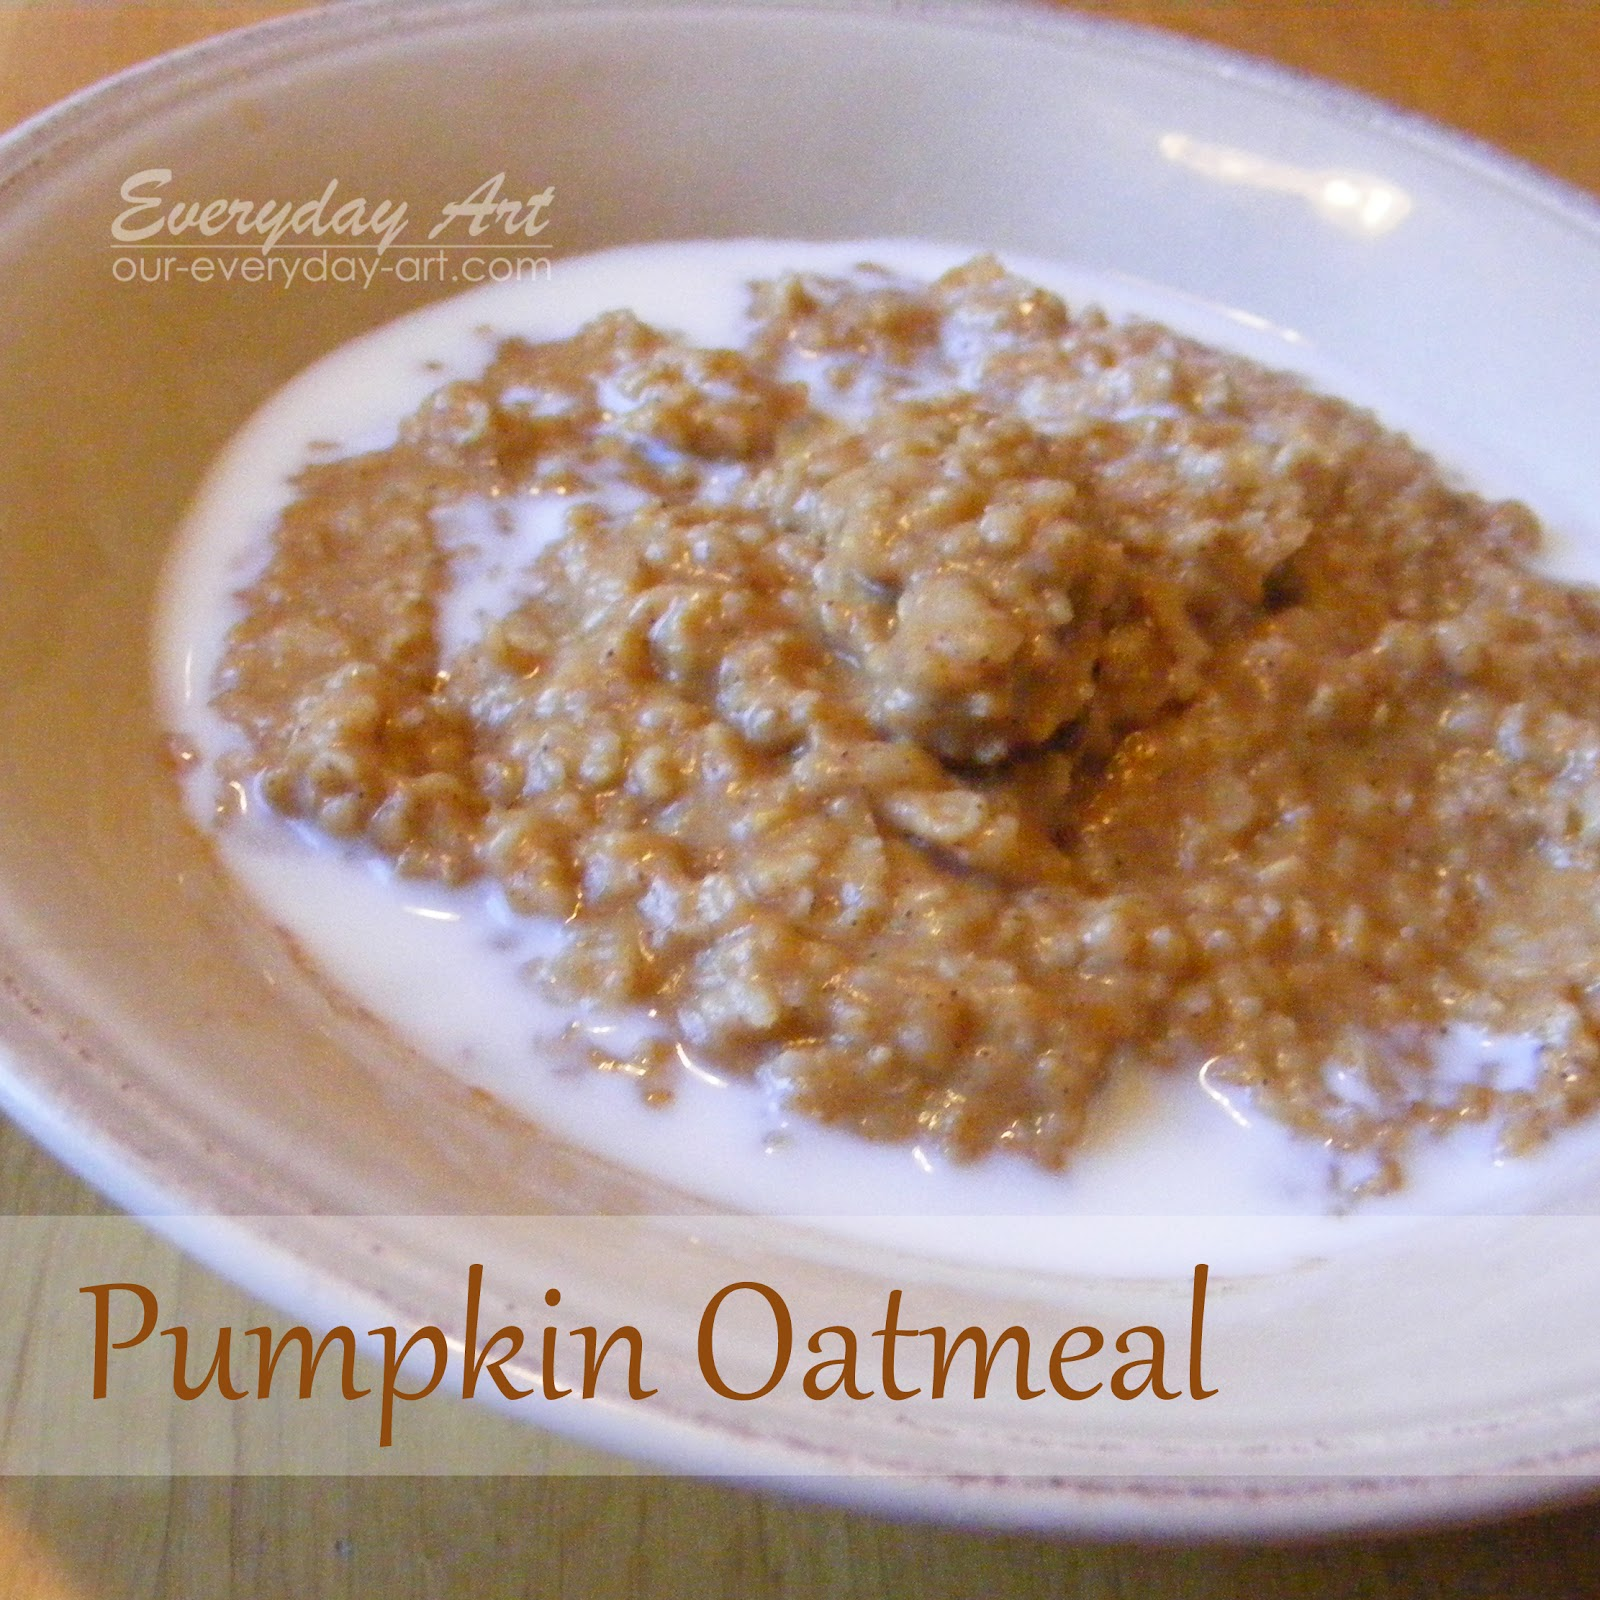 Everyday Art: Pumpkin Oatmeal